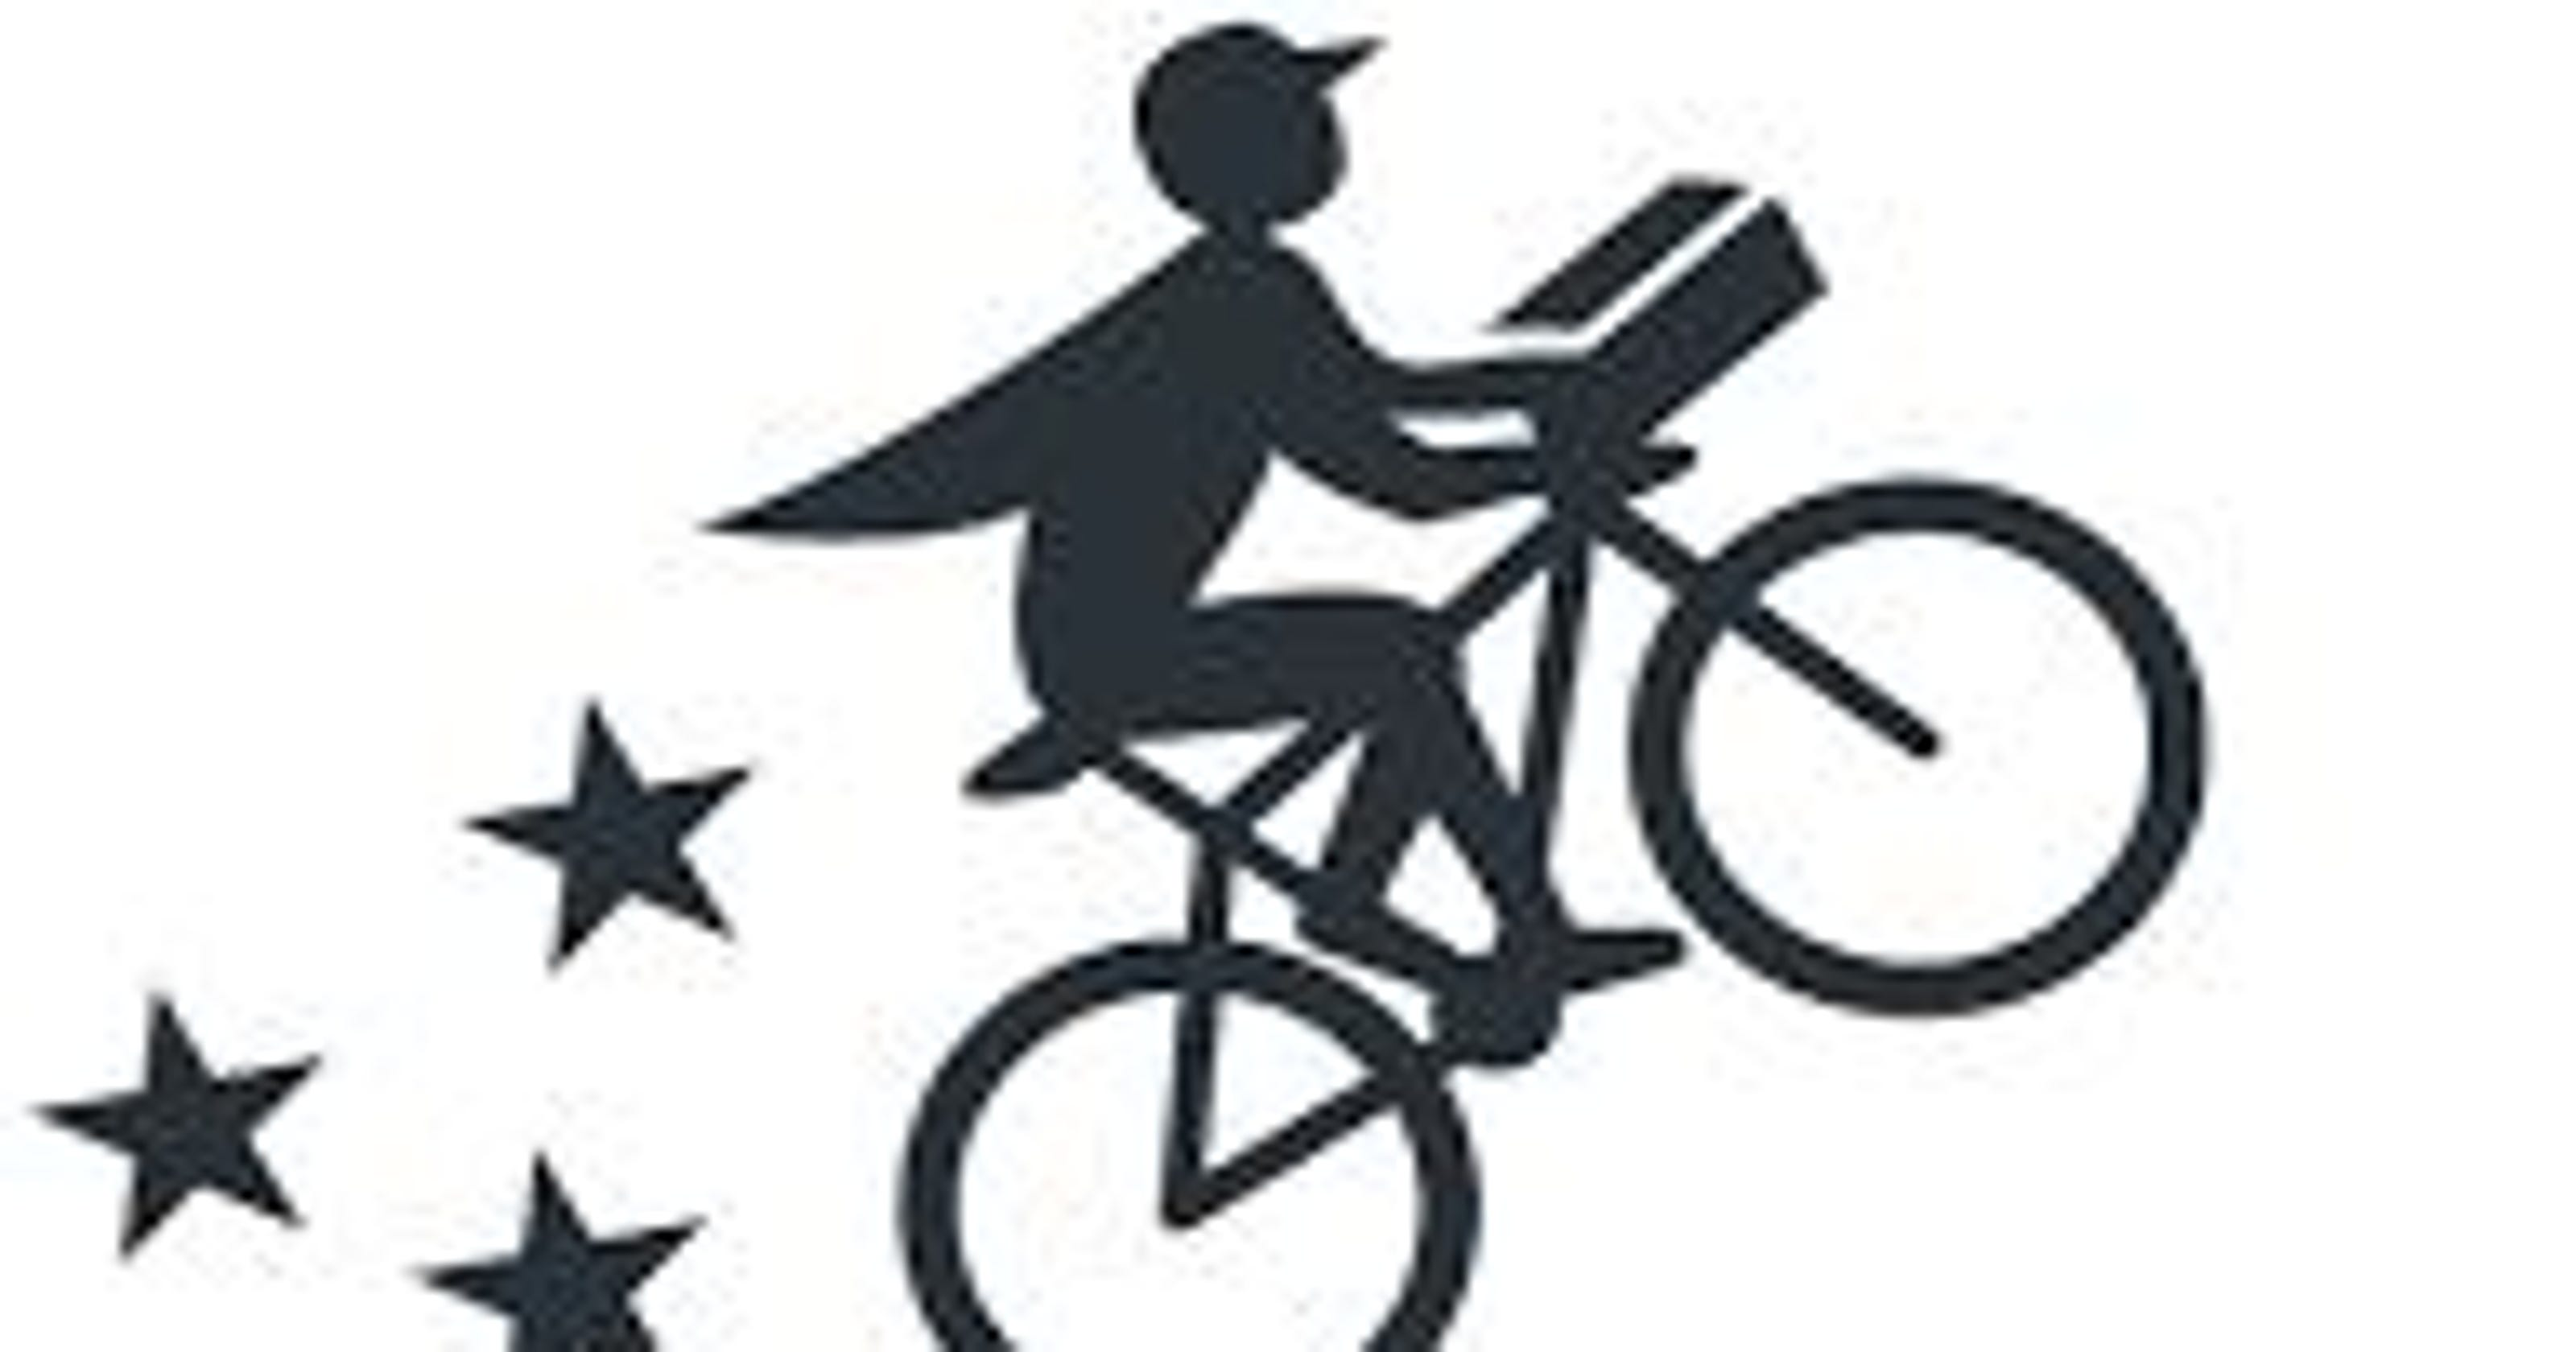 Postmates couriers object to changes that restrict choice